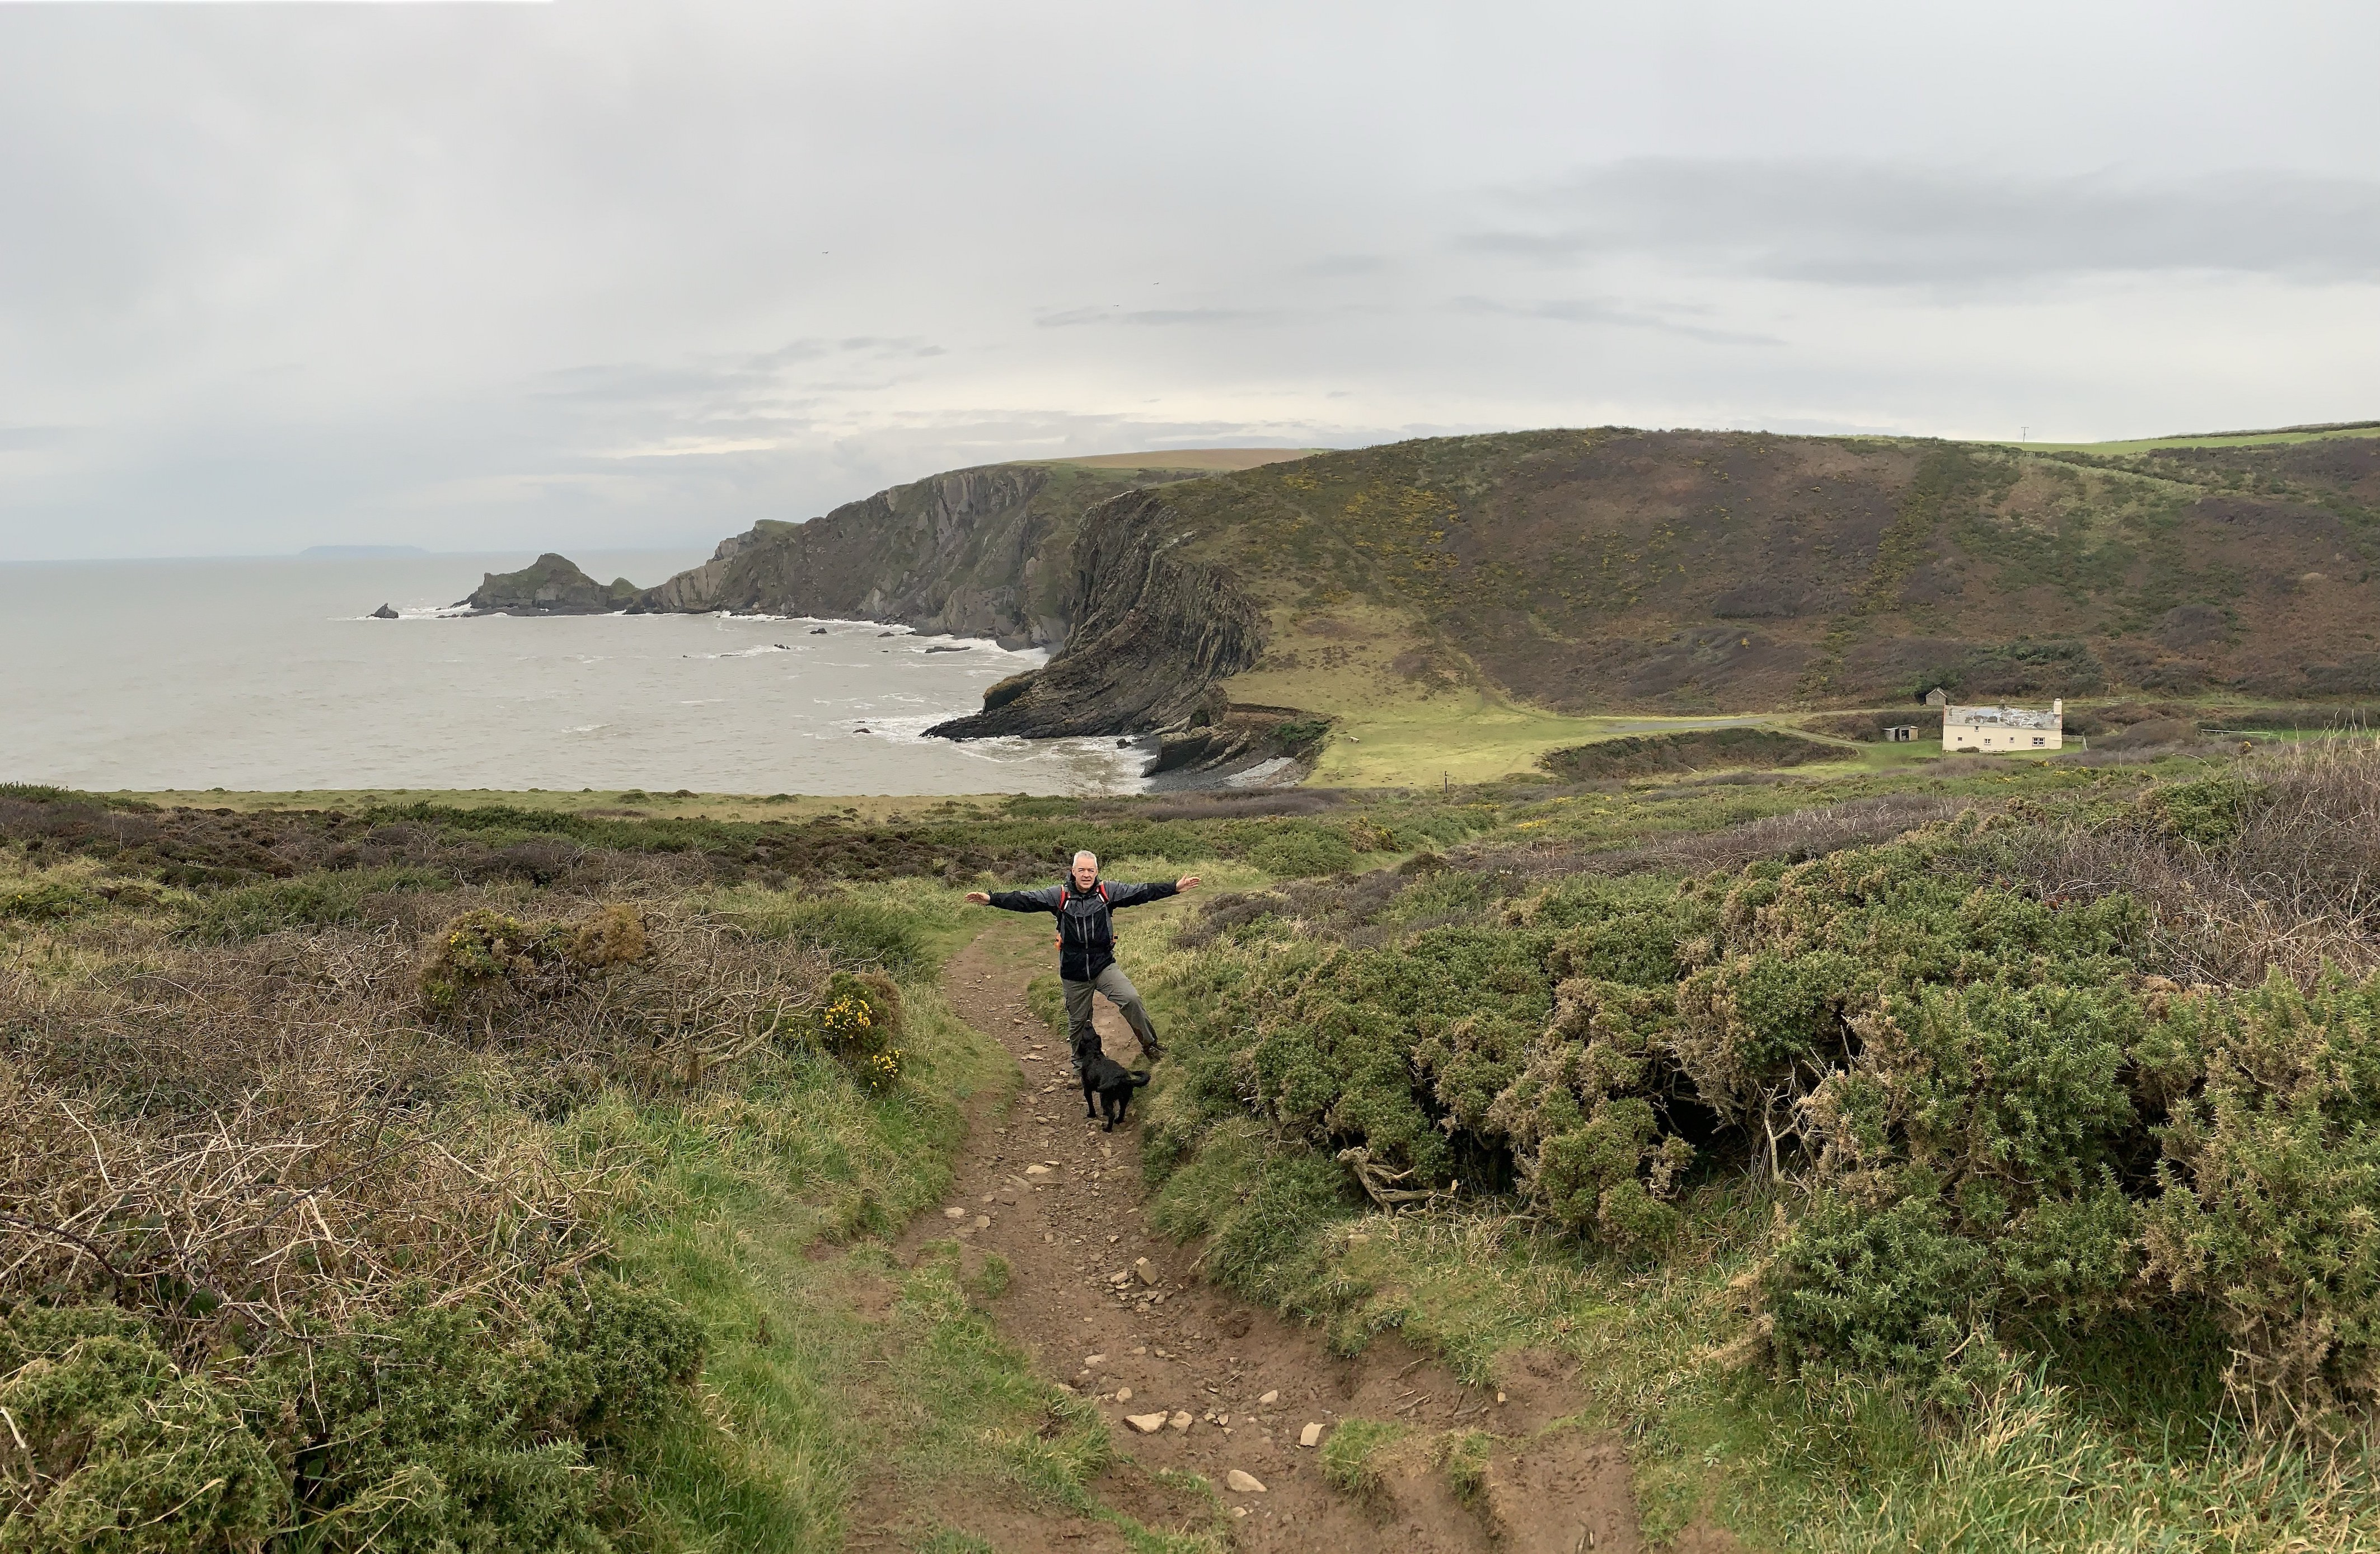 Stunning views along the The South West Coast Path from Clovelly to Hartland Quay